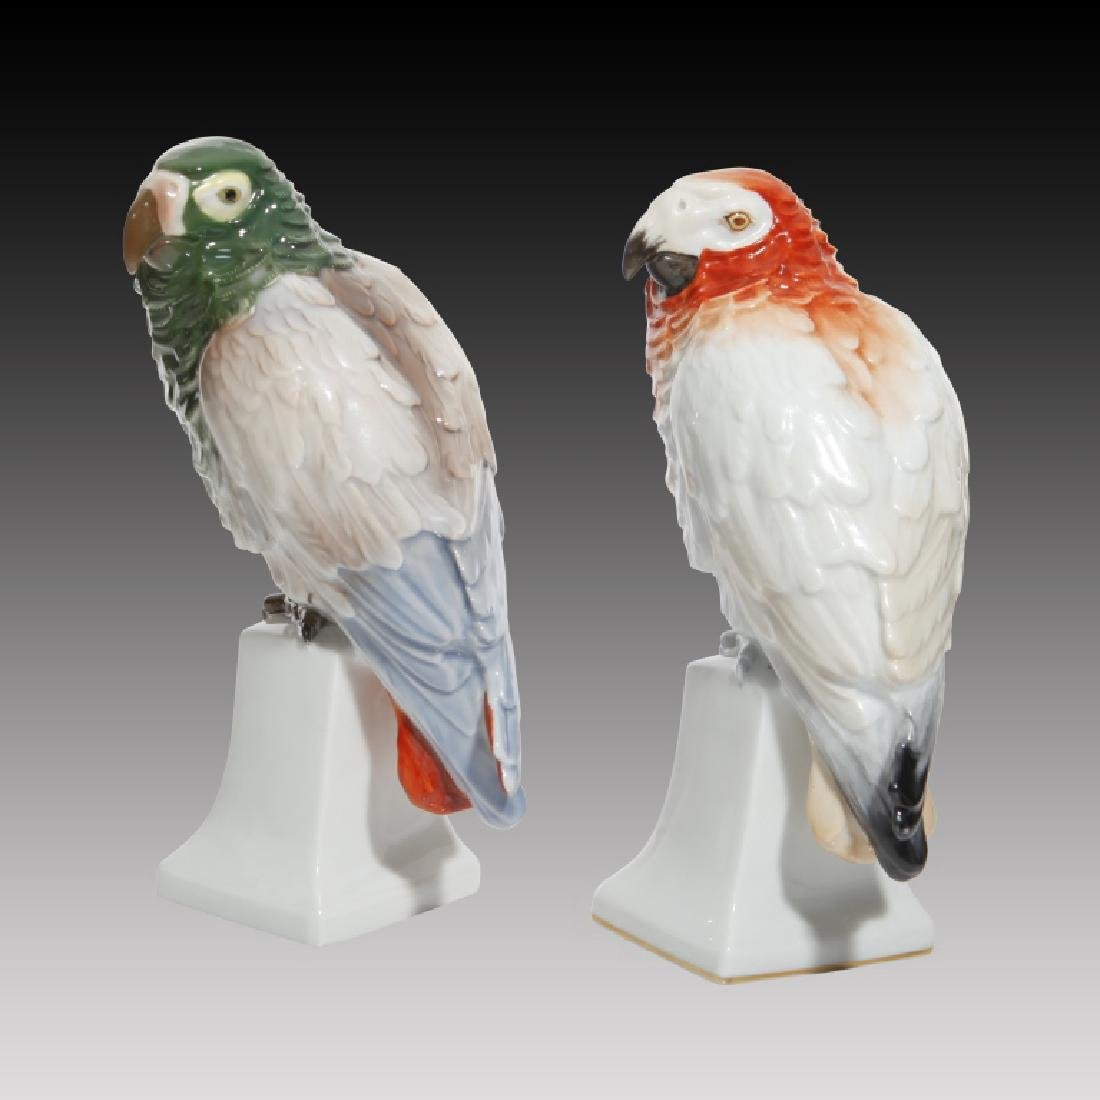 Grouping of 4 Colorful Parrots and Cockatoos - 4